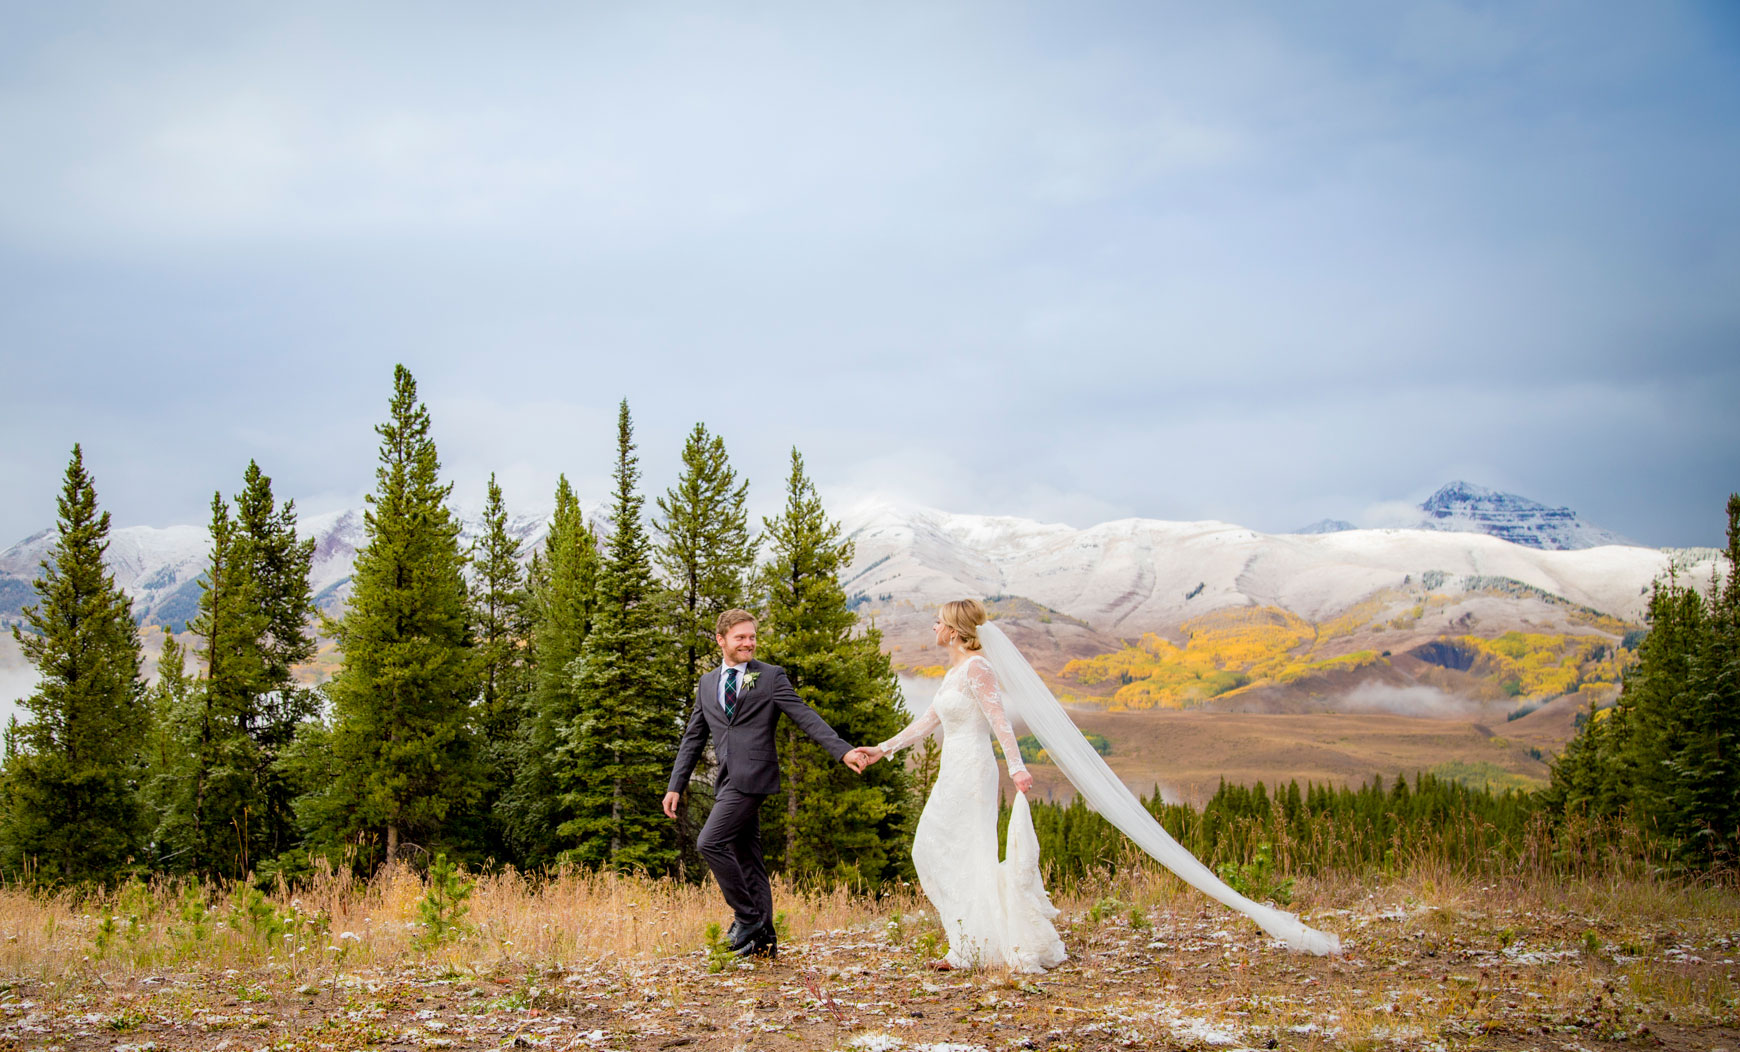 A Snowy Fall Wedding in Crested Butte, Colorado